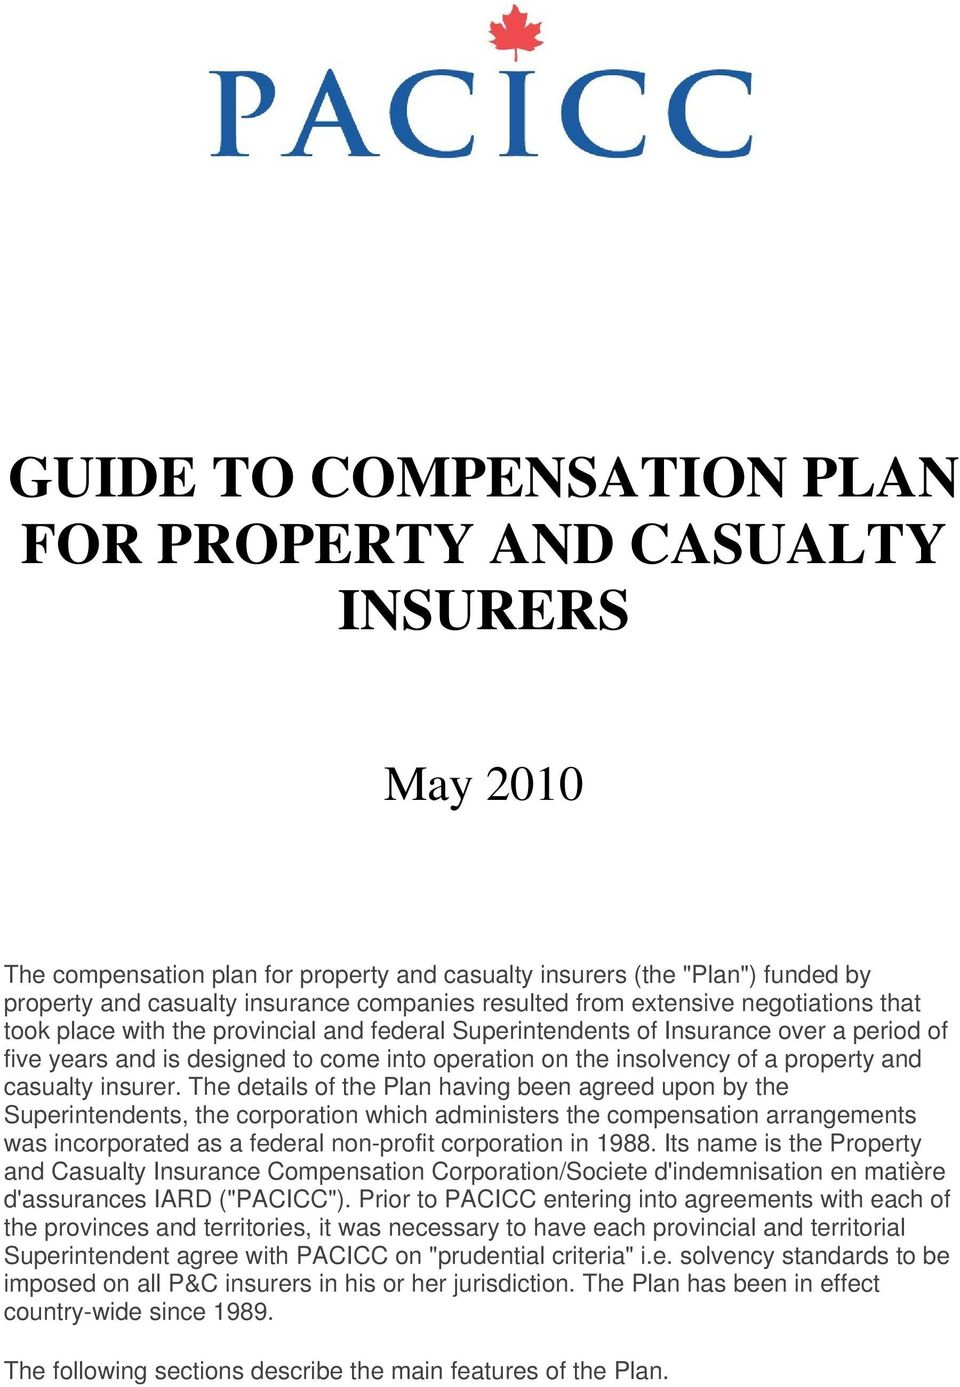 of a property and casualty insurer.